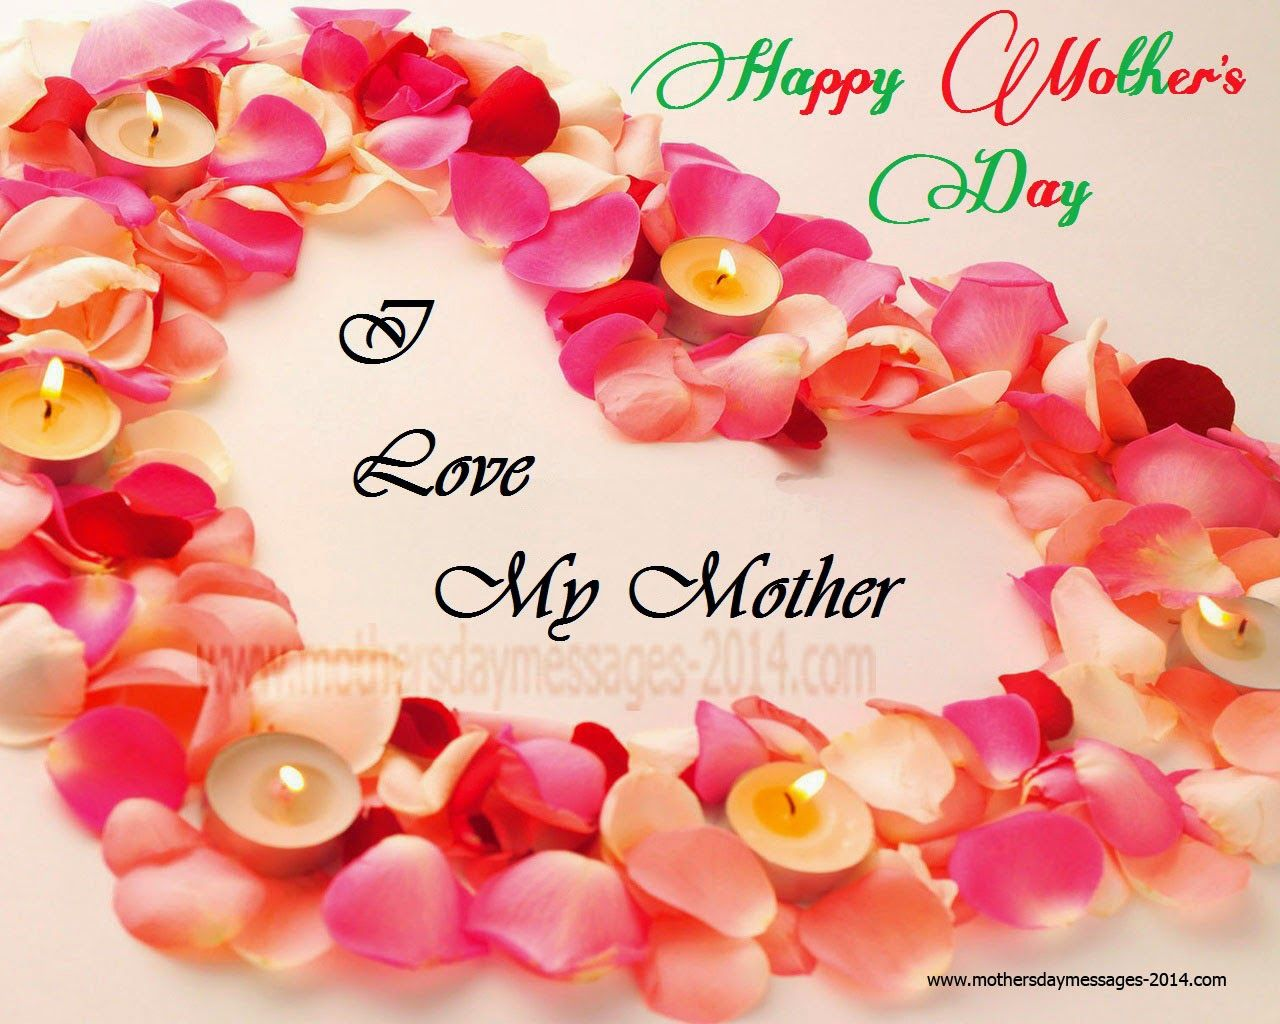 I Love You Mom Happy Mothers Day Wishes Greetings Messages Happy